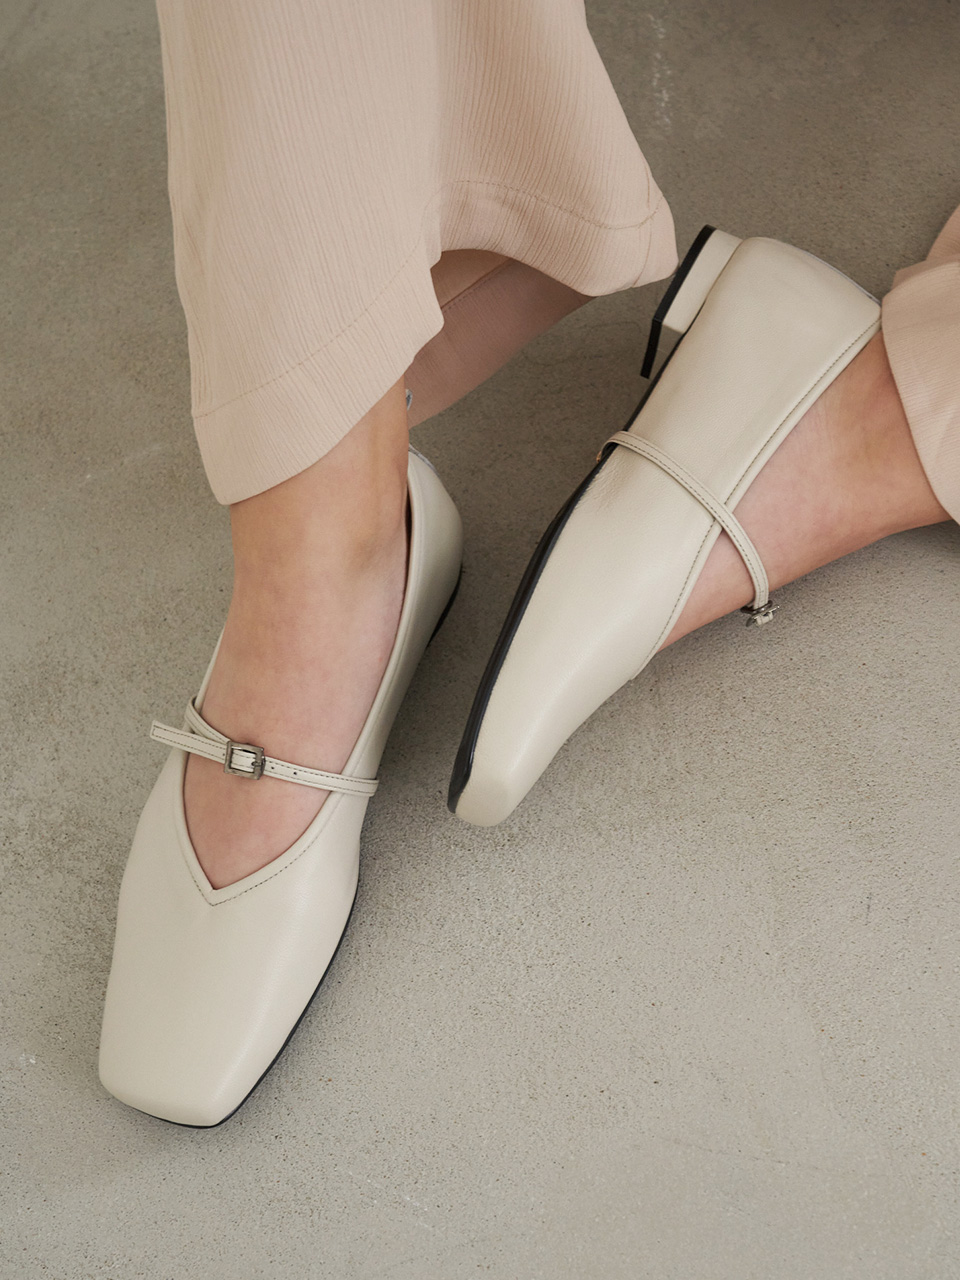 Mrc071 3Way Strap Flat Shoes (Ivory)